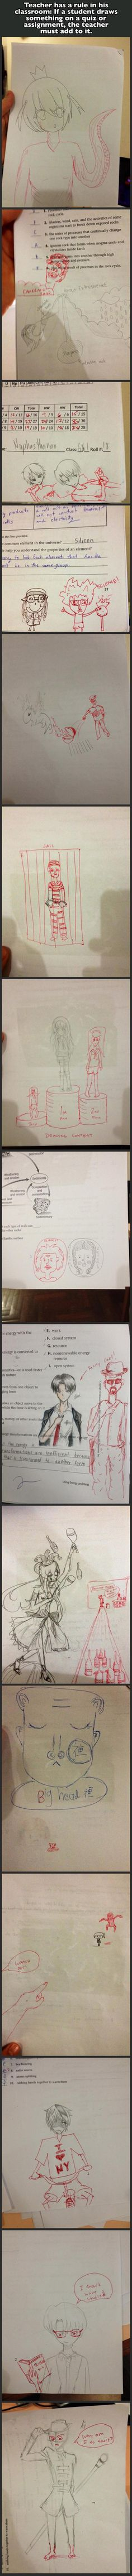 If only my teachers were this awesome... They don't like it at all if I draw on my papers...